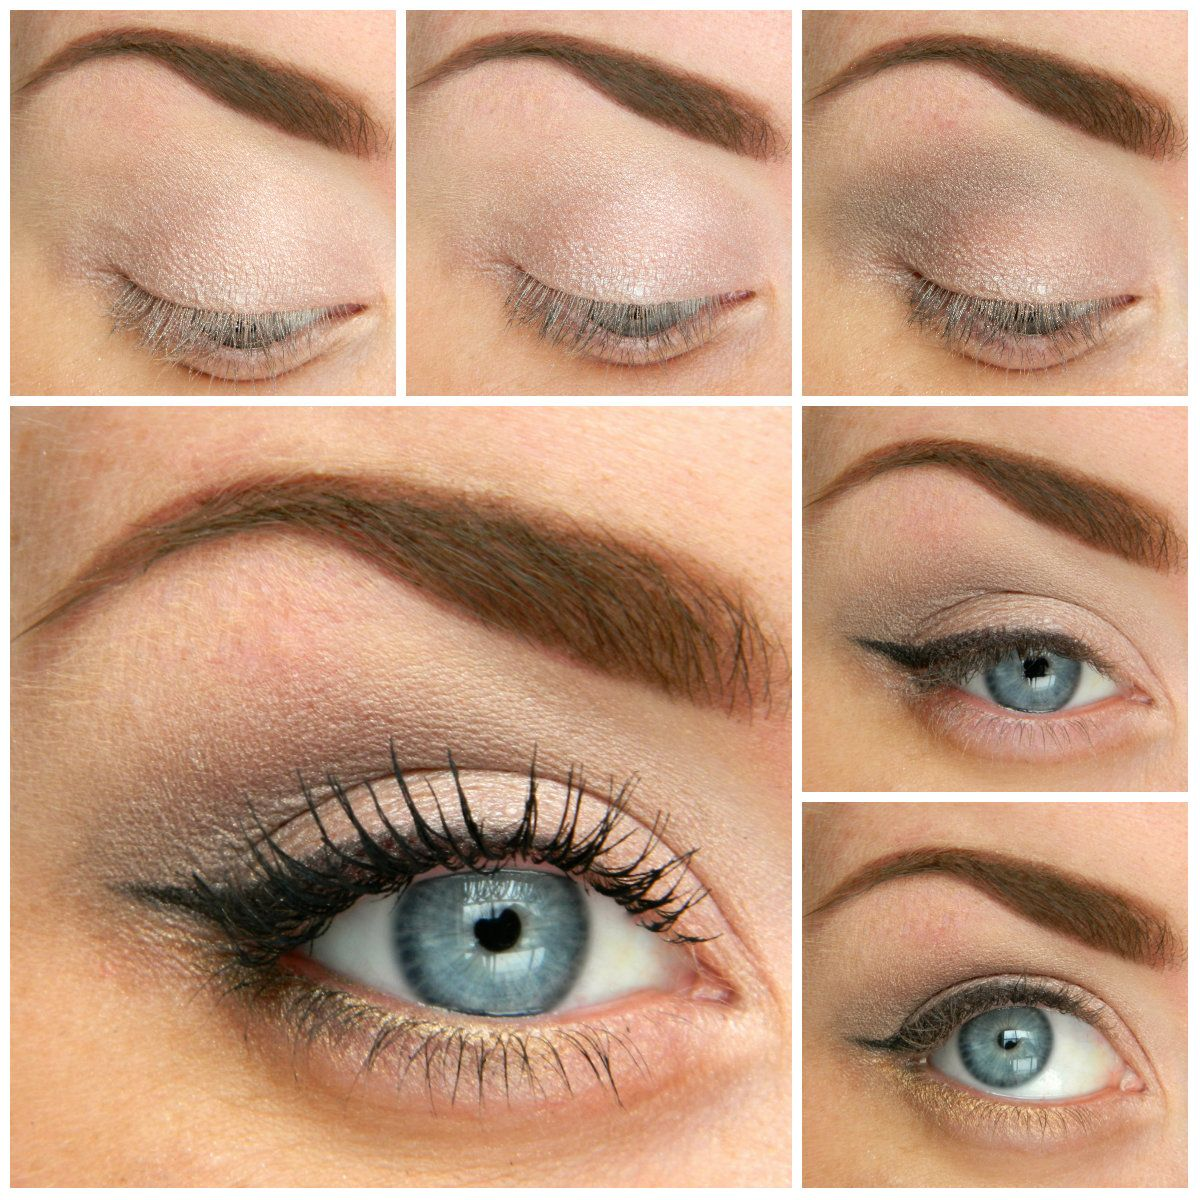 How To Wear Eye Makeup In Six Simple Tips Eye Magazines And Lifestyle